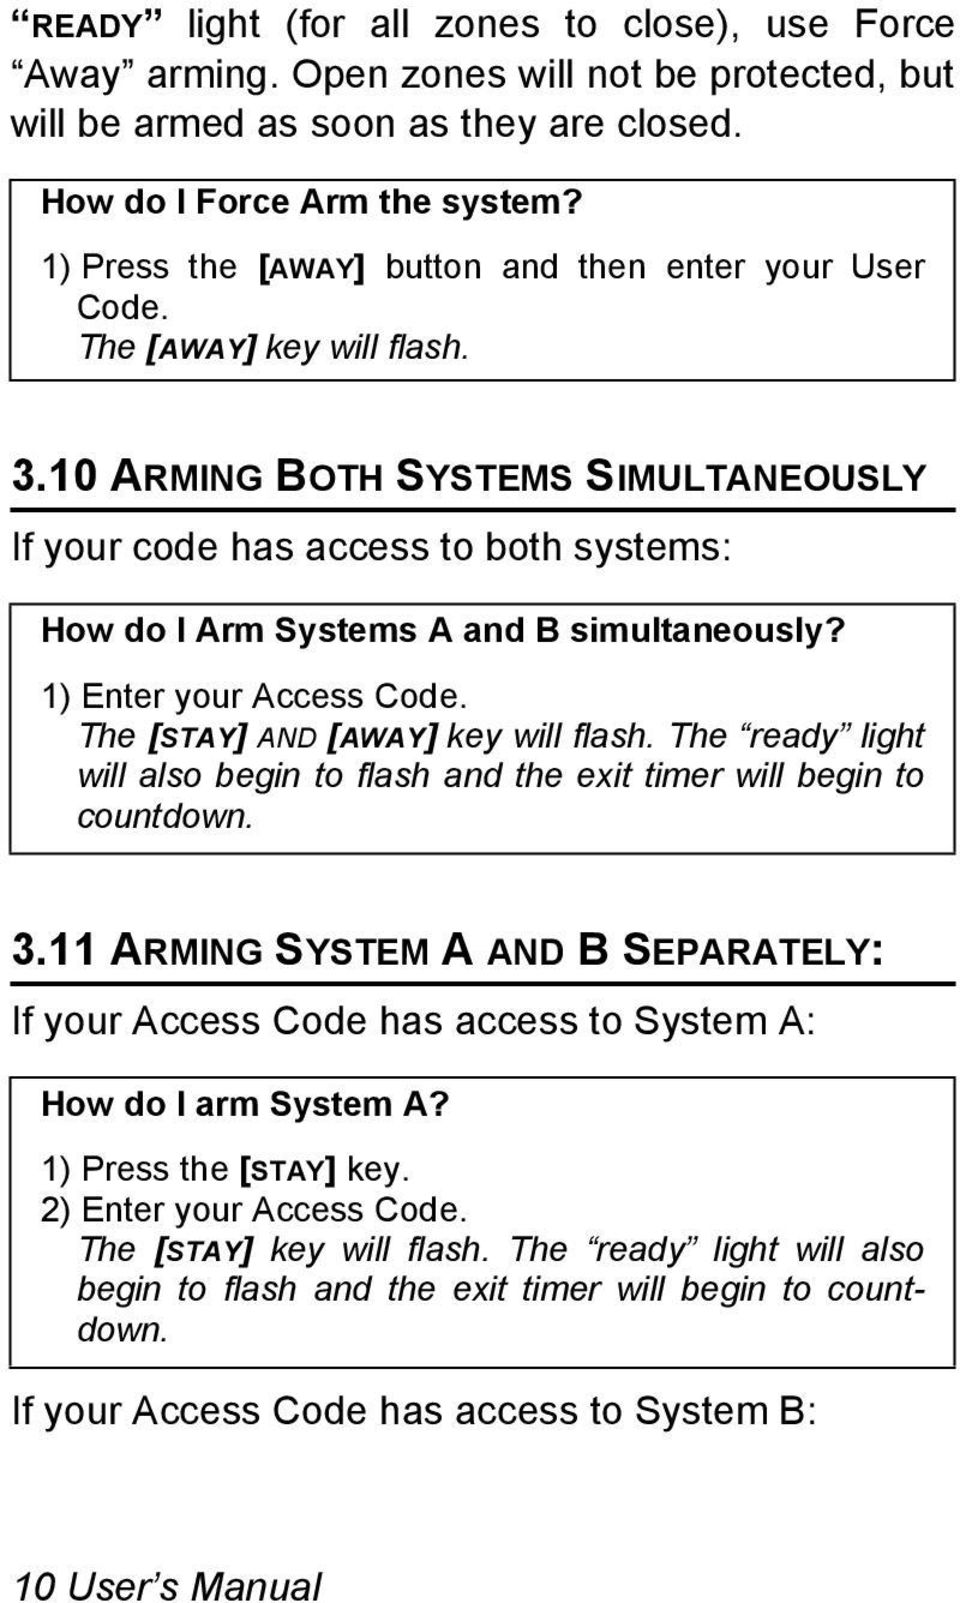 10 ARMING BOTH SYSTEMS SIMULTANEOUSLY If your code has access to both systems: How do I Arm Systems A and B simultaneously? 1) Enter your Access Code. The [STAY] AND [AWAY] key will flash.